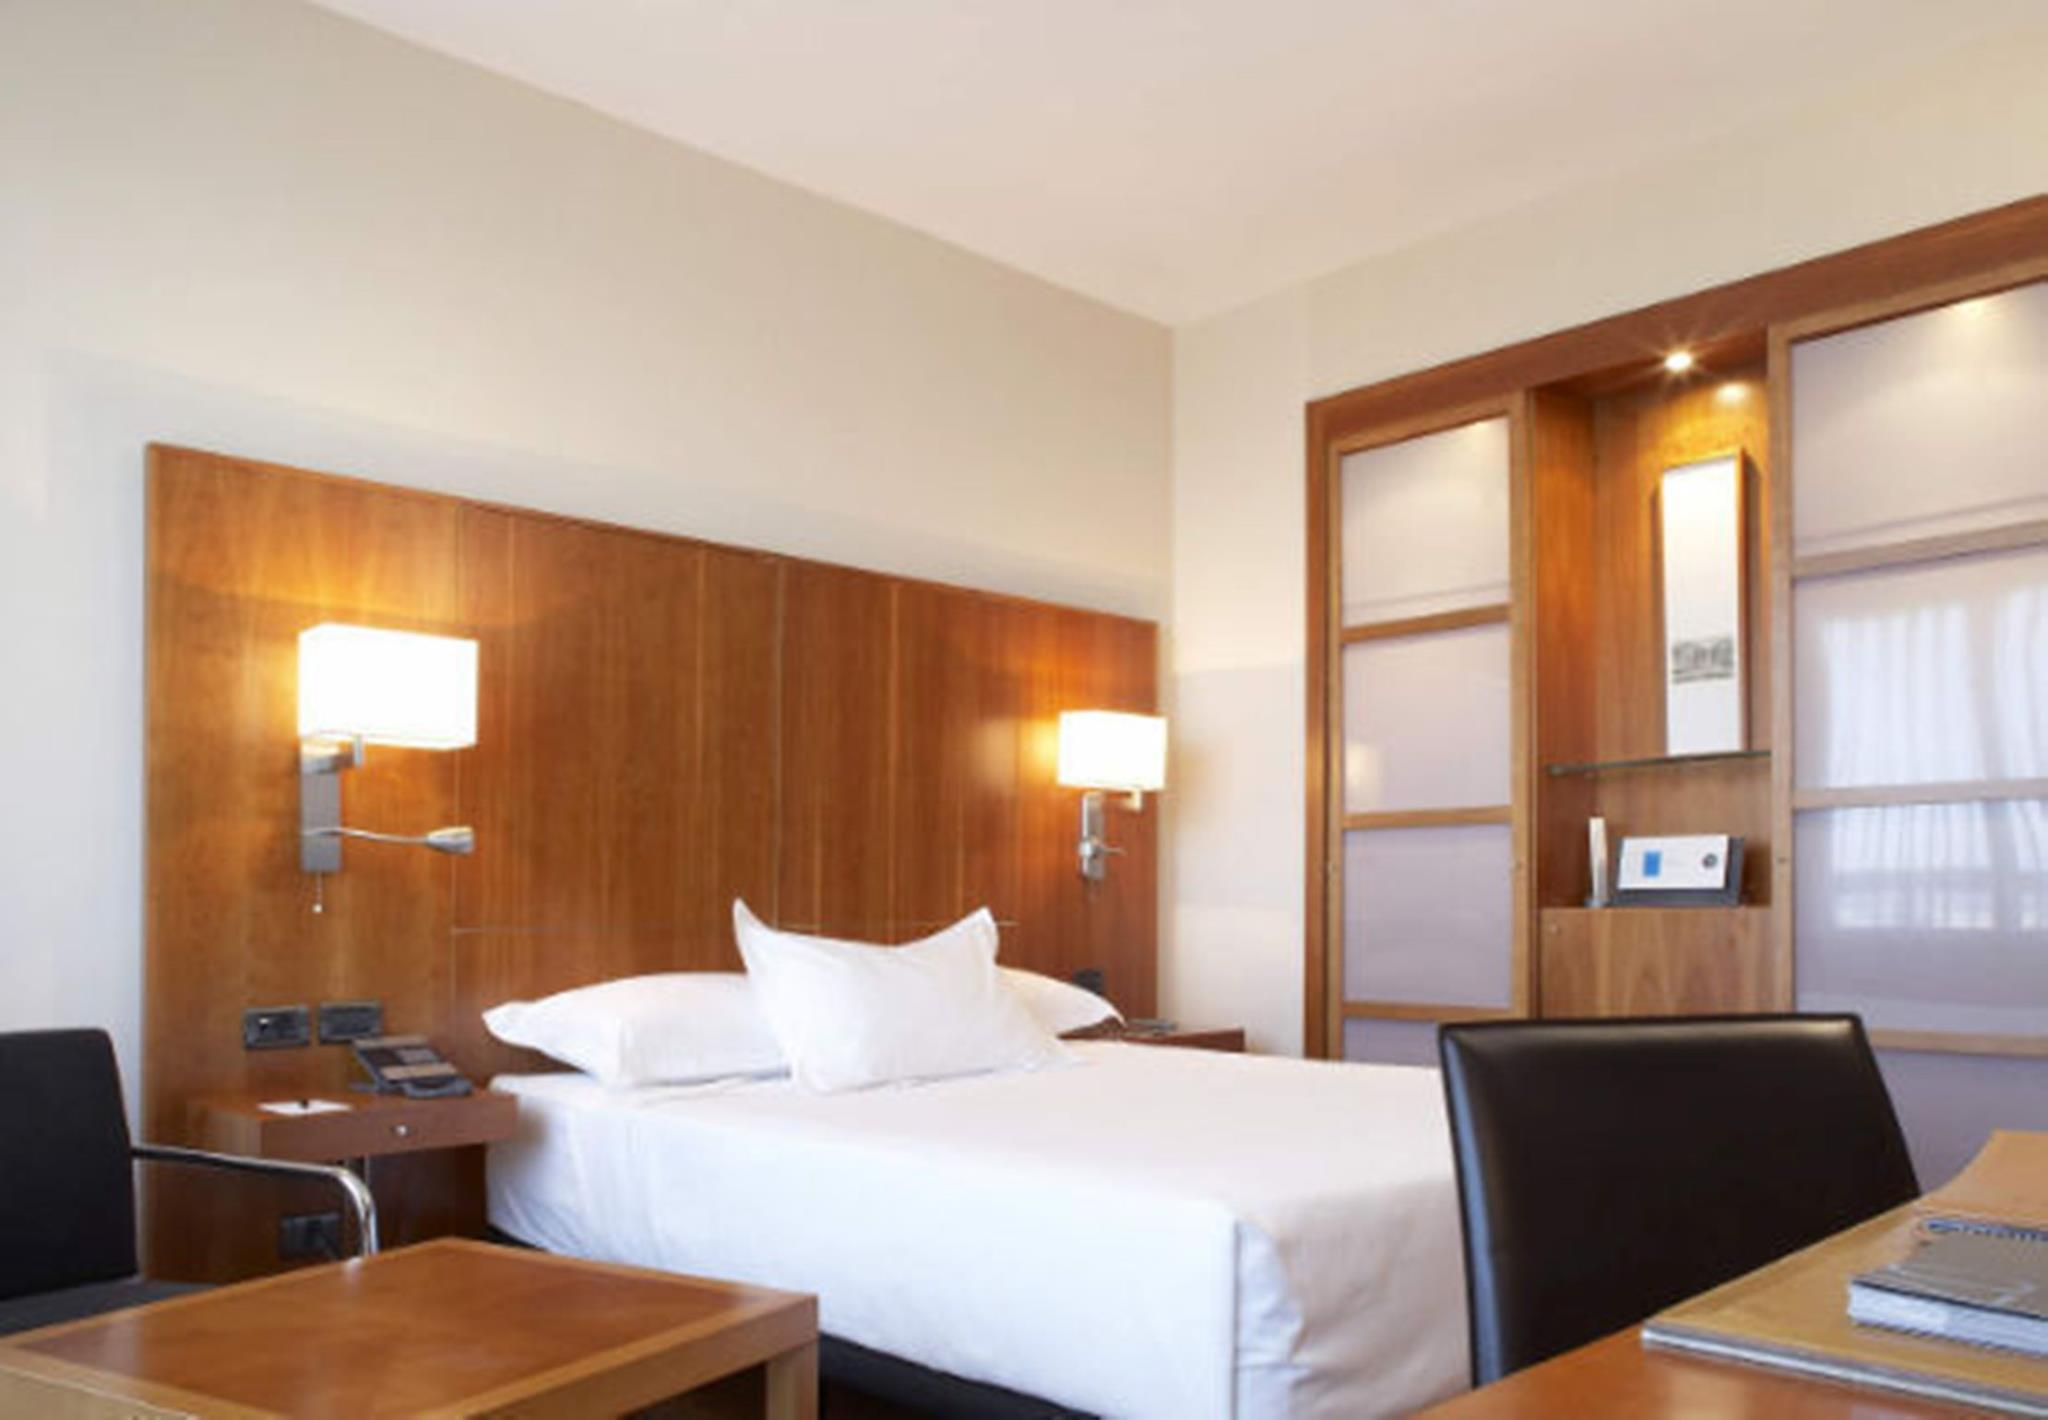 Standard Room, Guest room, 1 King or 2 Twin/Single Bed(s)